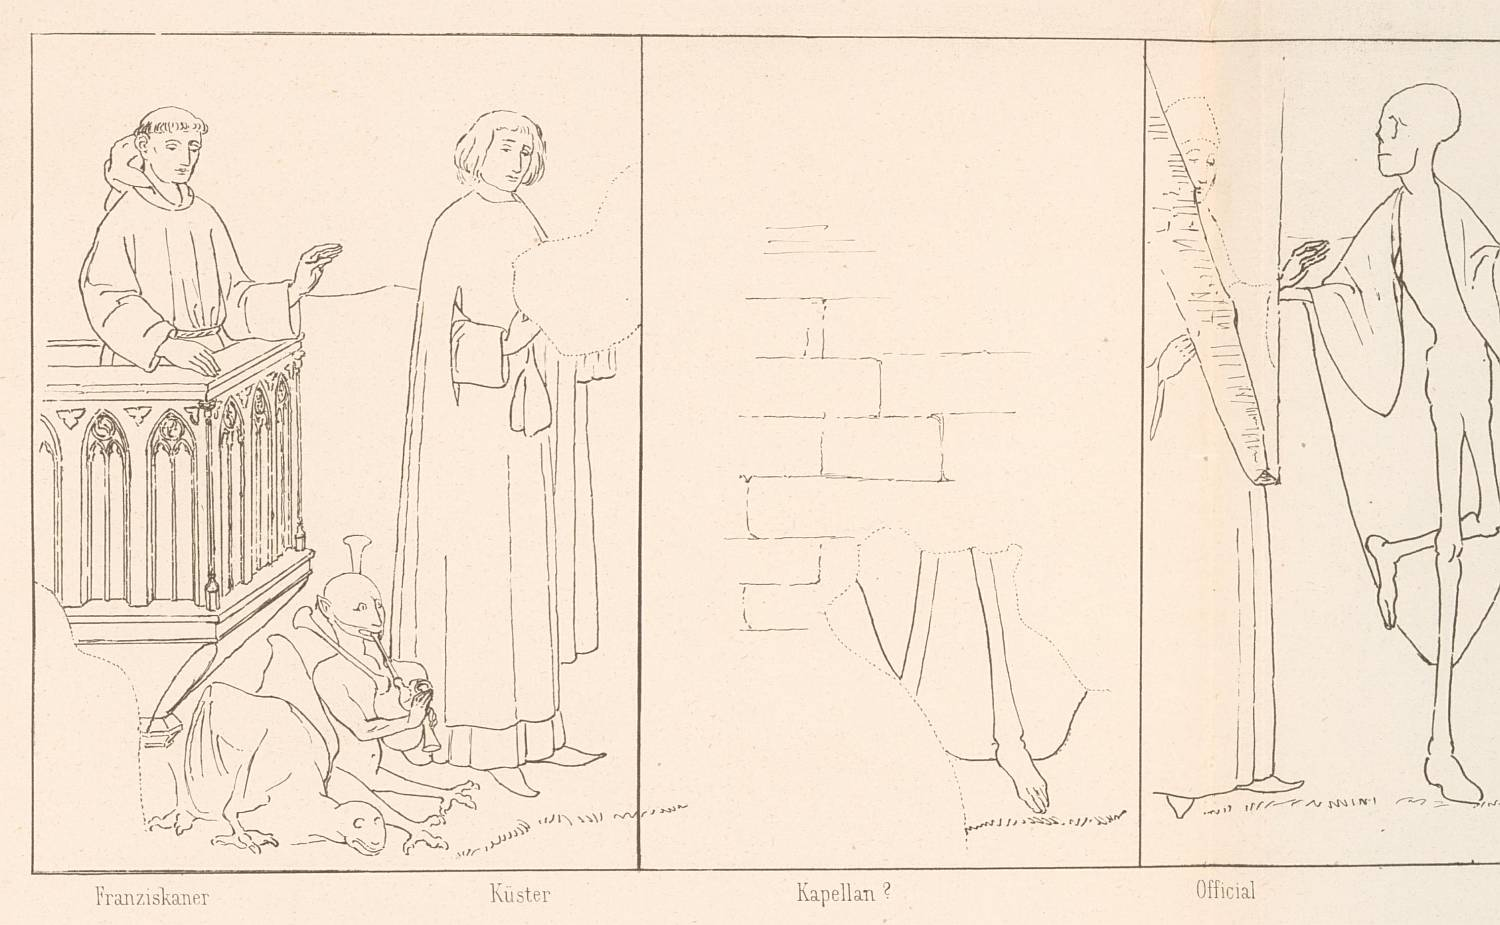 Sketch (detail) of the mural when it was first discovered